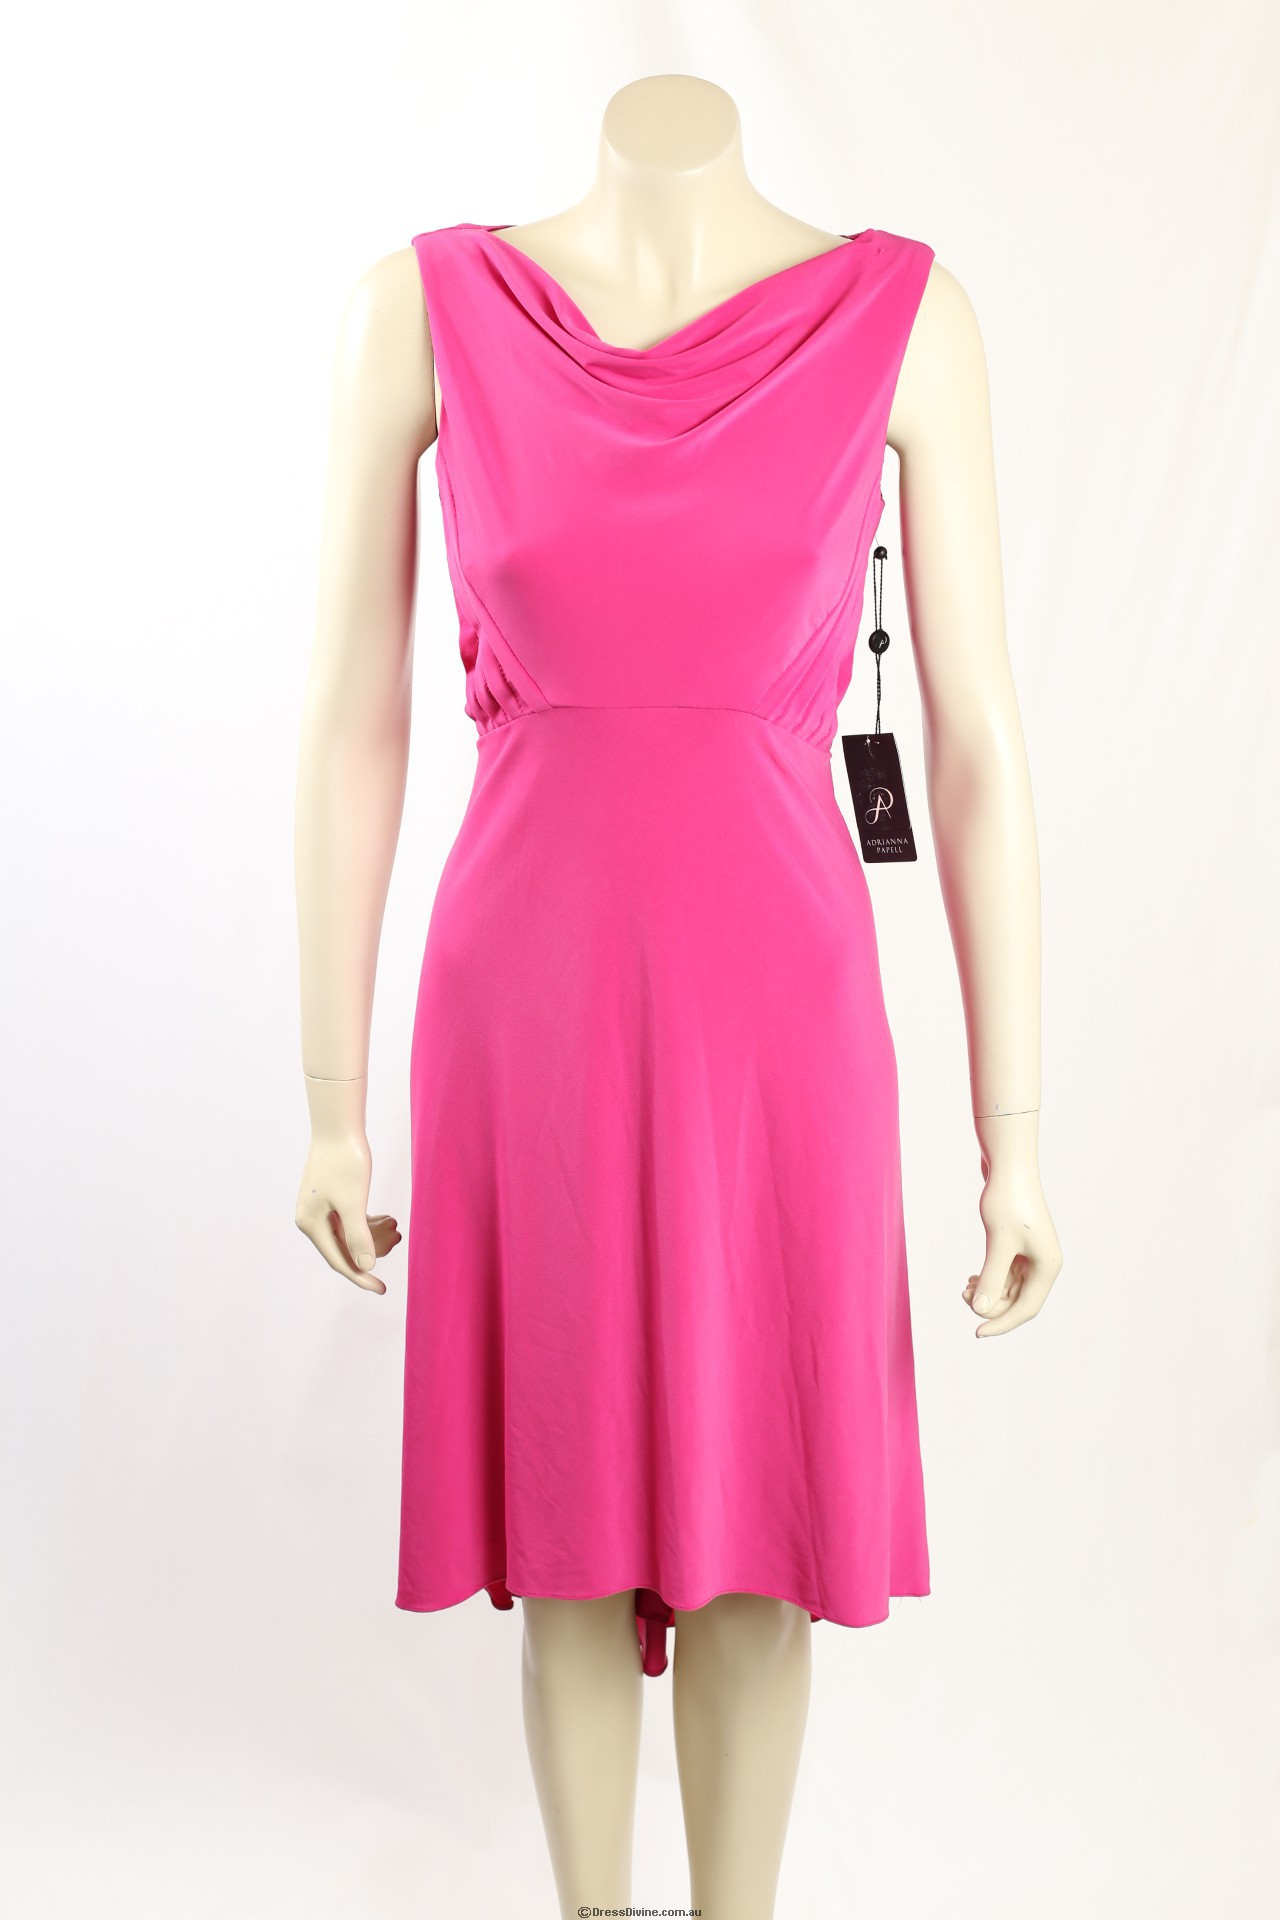 Find great deals on eBay for size 14 dresses. Shop with confidence.